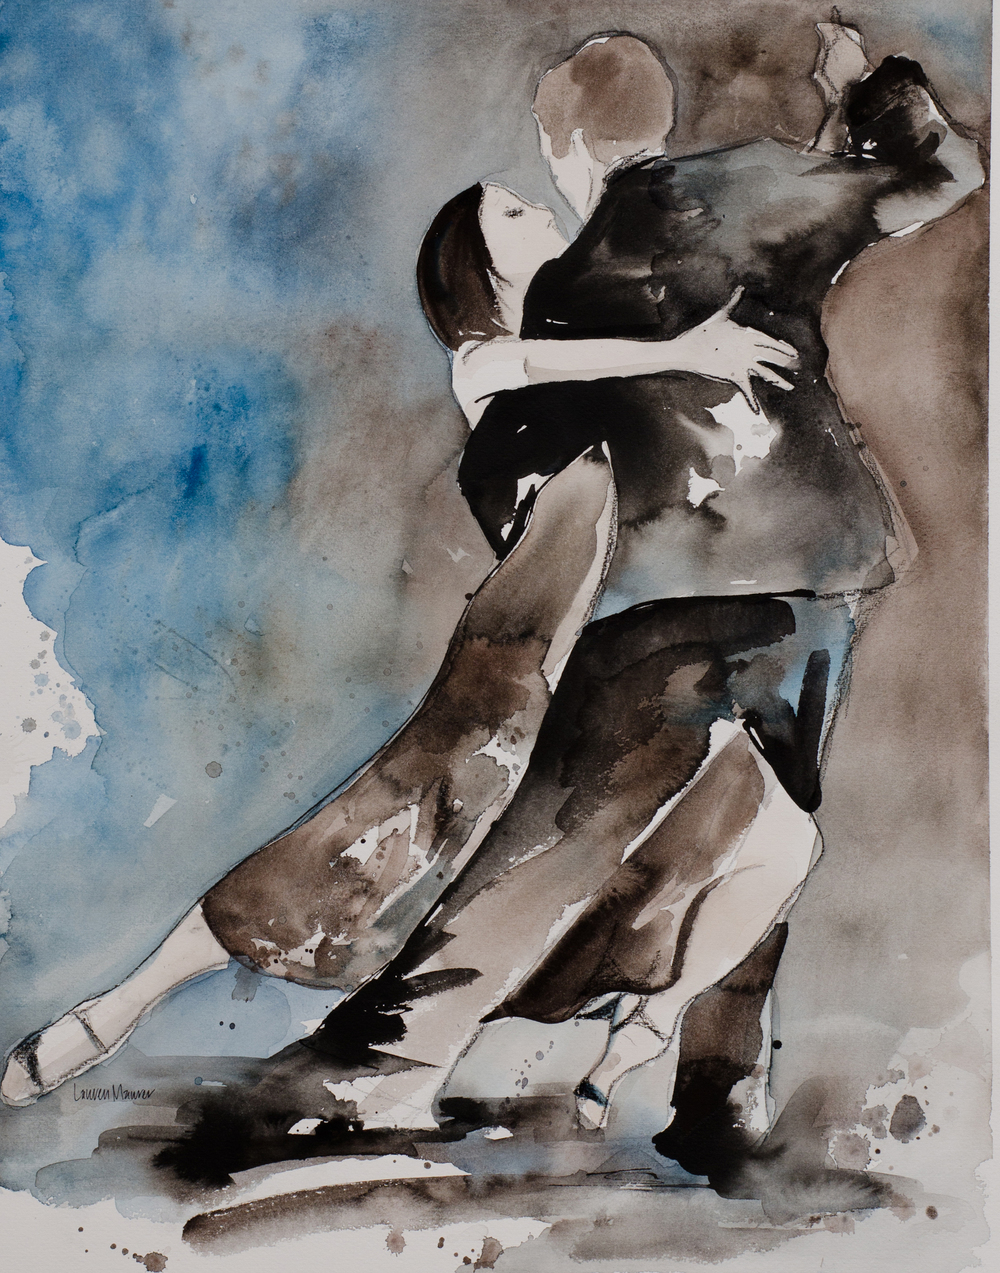 Michelle and Joachim - 16x20 - watercolor, ink, and charcoal